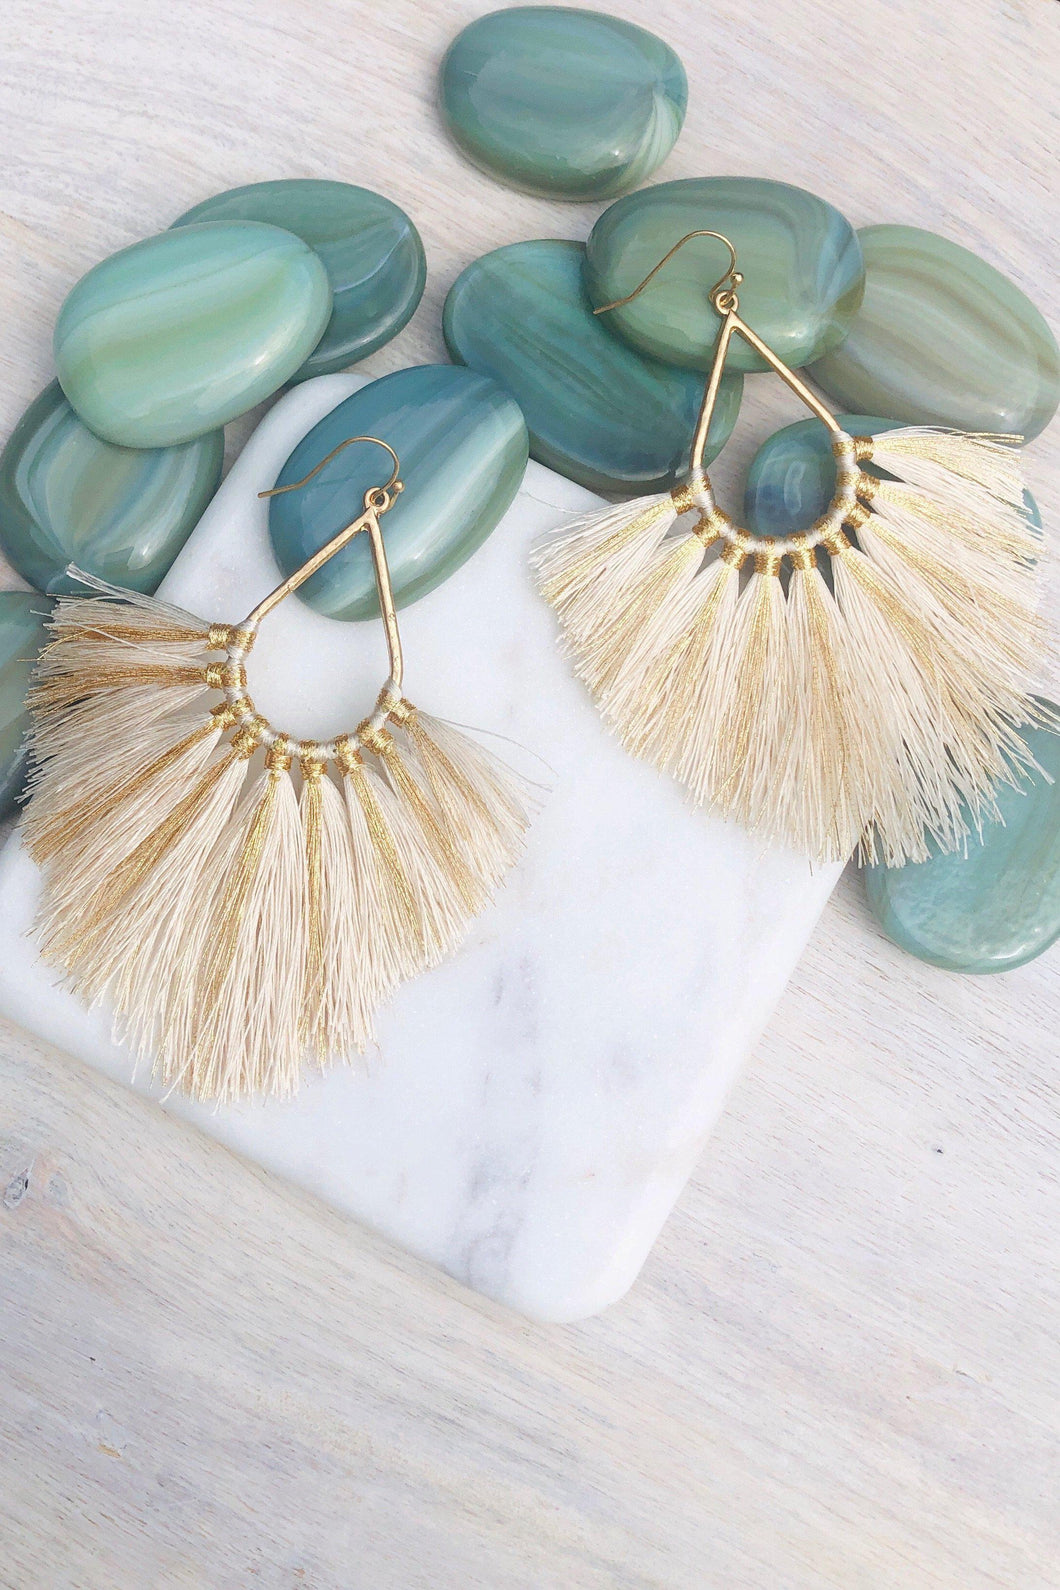 Lanai Fringe Tassel Statement Earrings Natural-Earrings-Hazel & Indigo